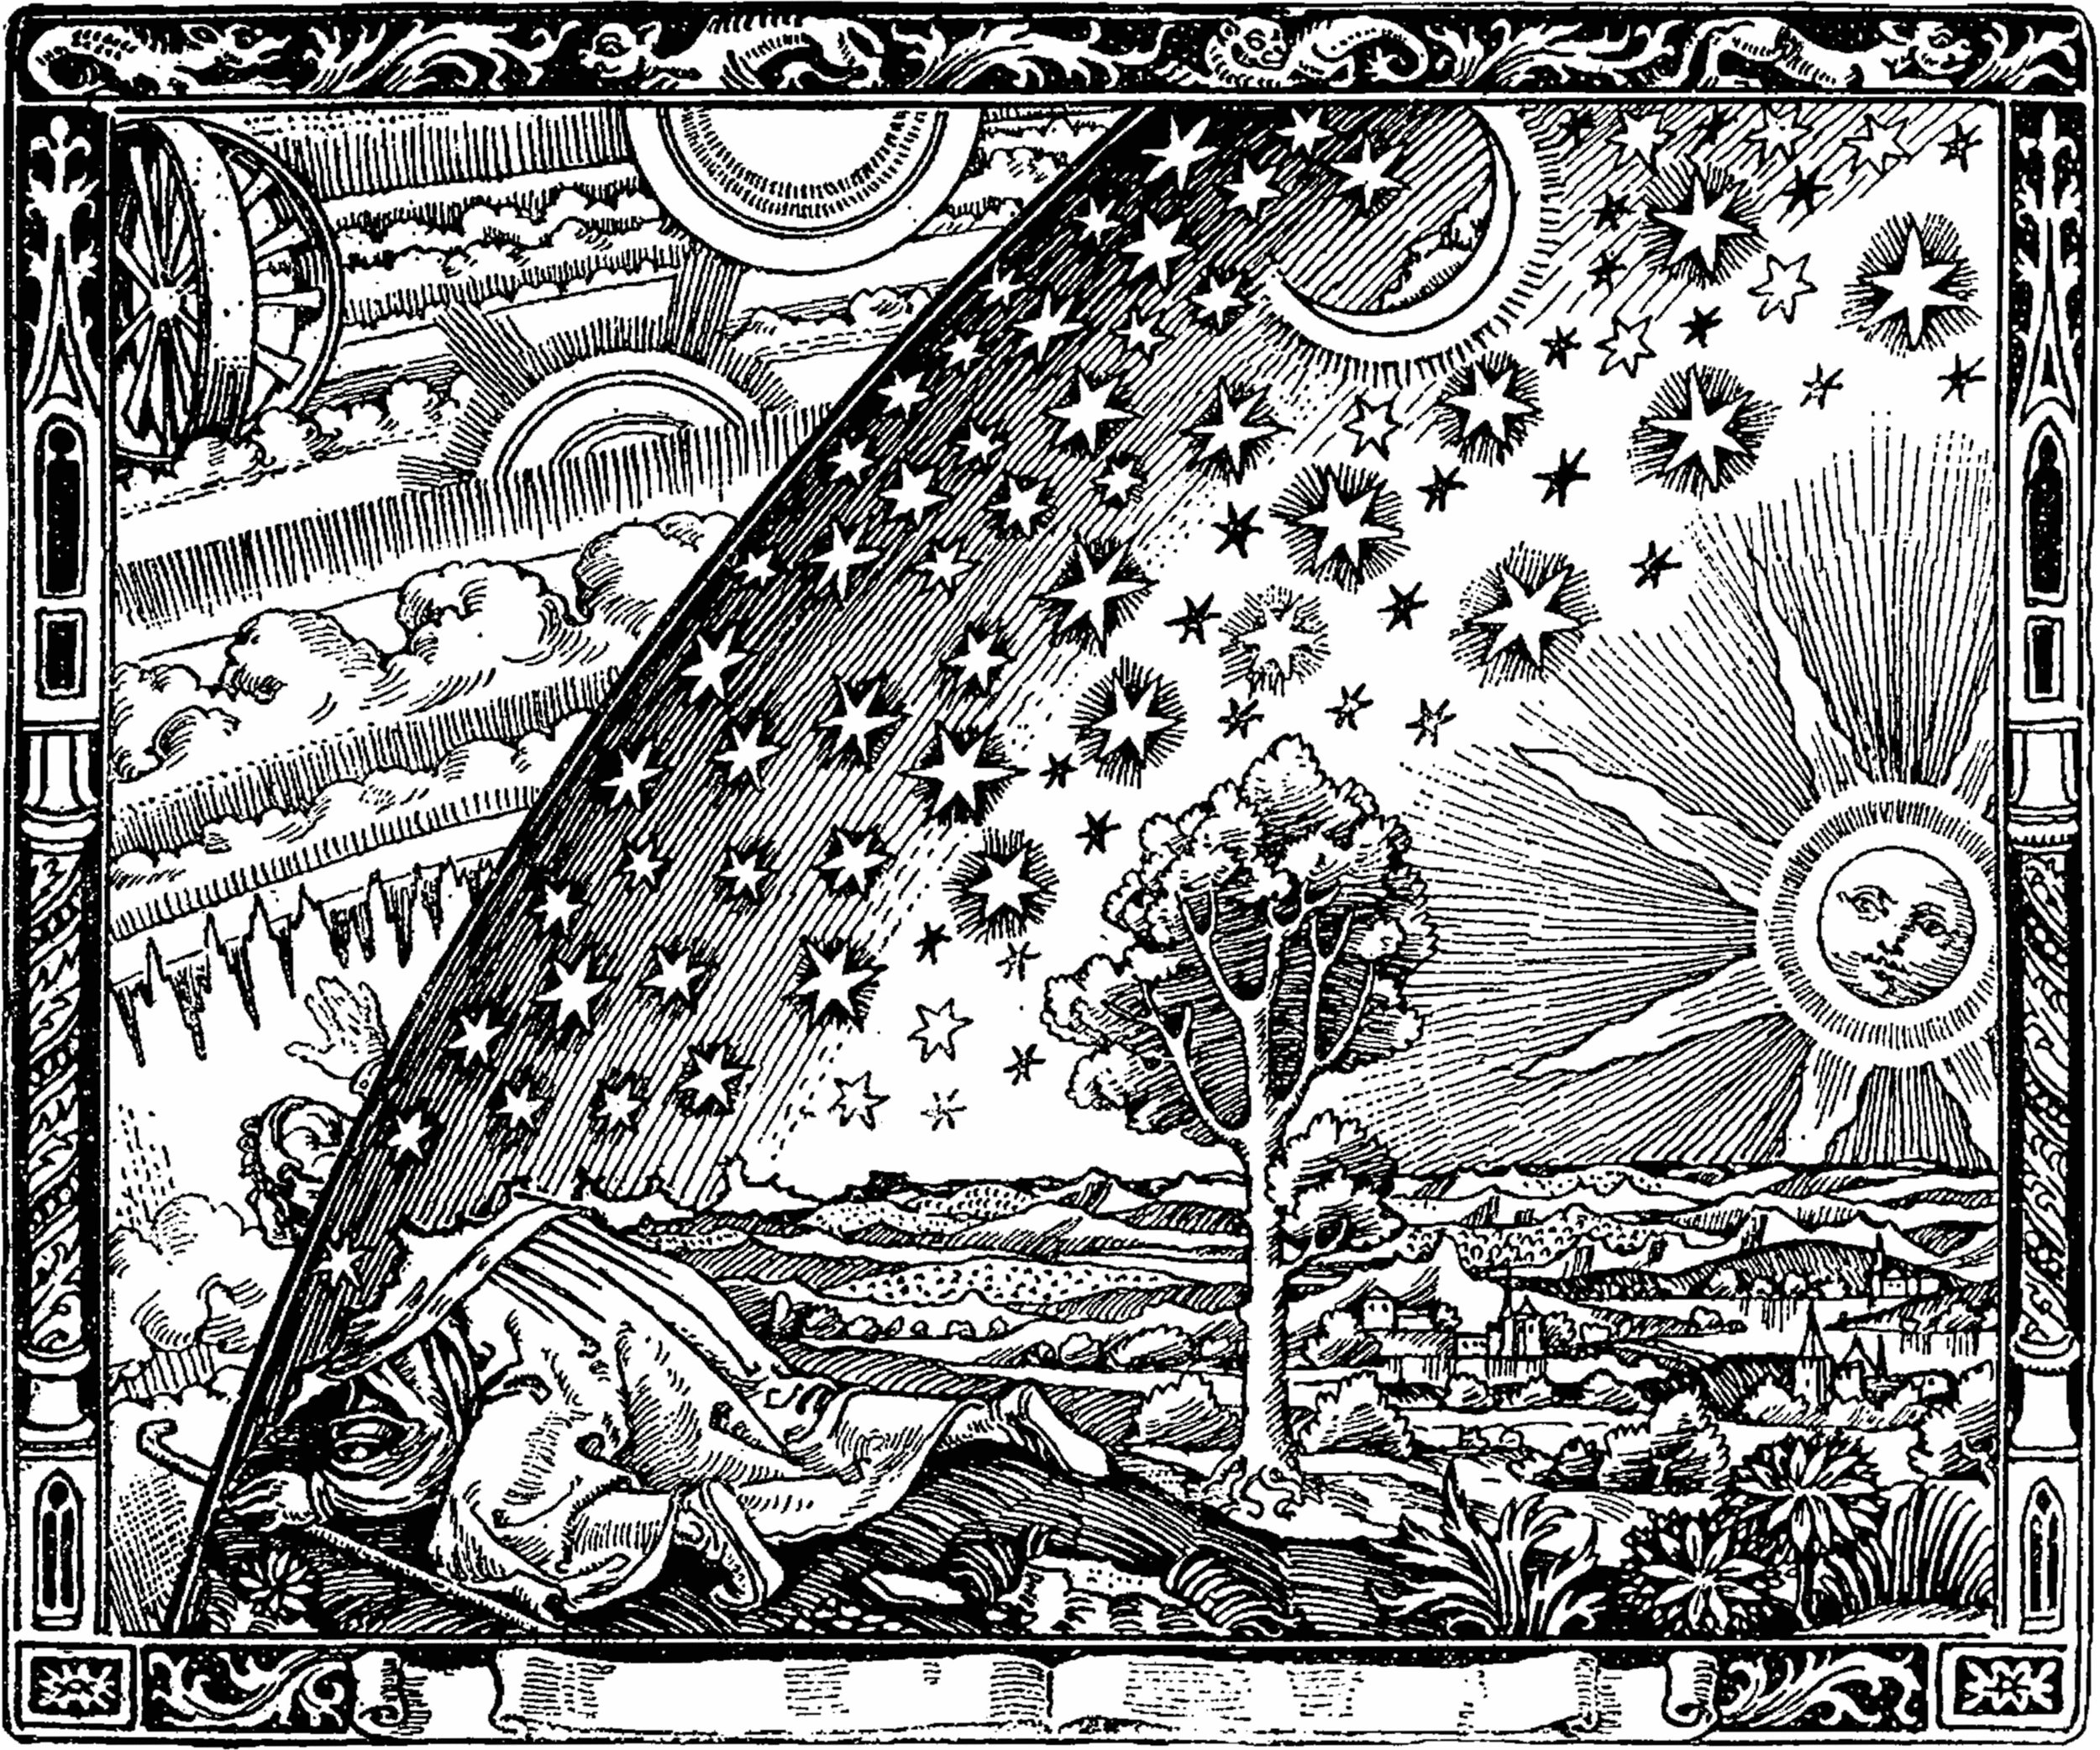 Camille Flammarion, L'atmosphere